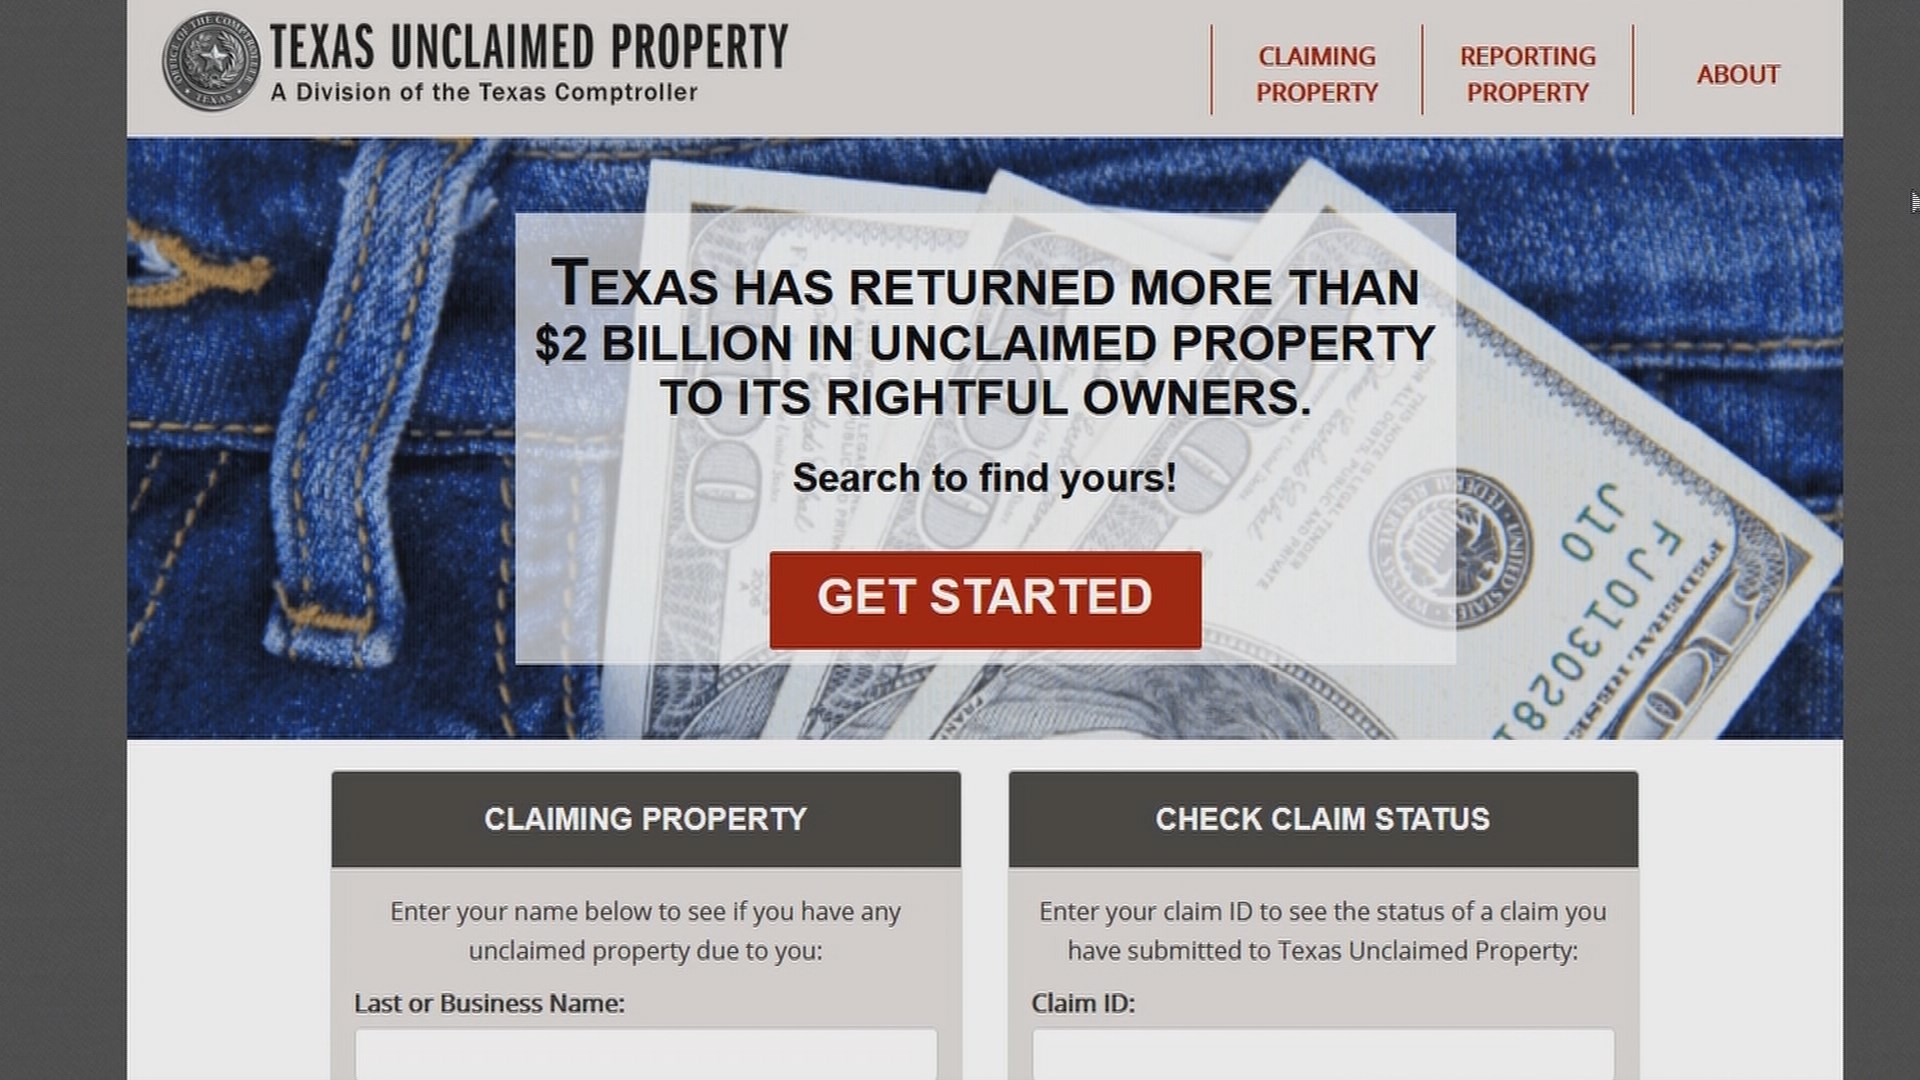 Texas Unclaimed Property Details